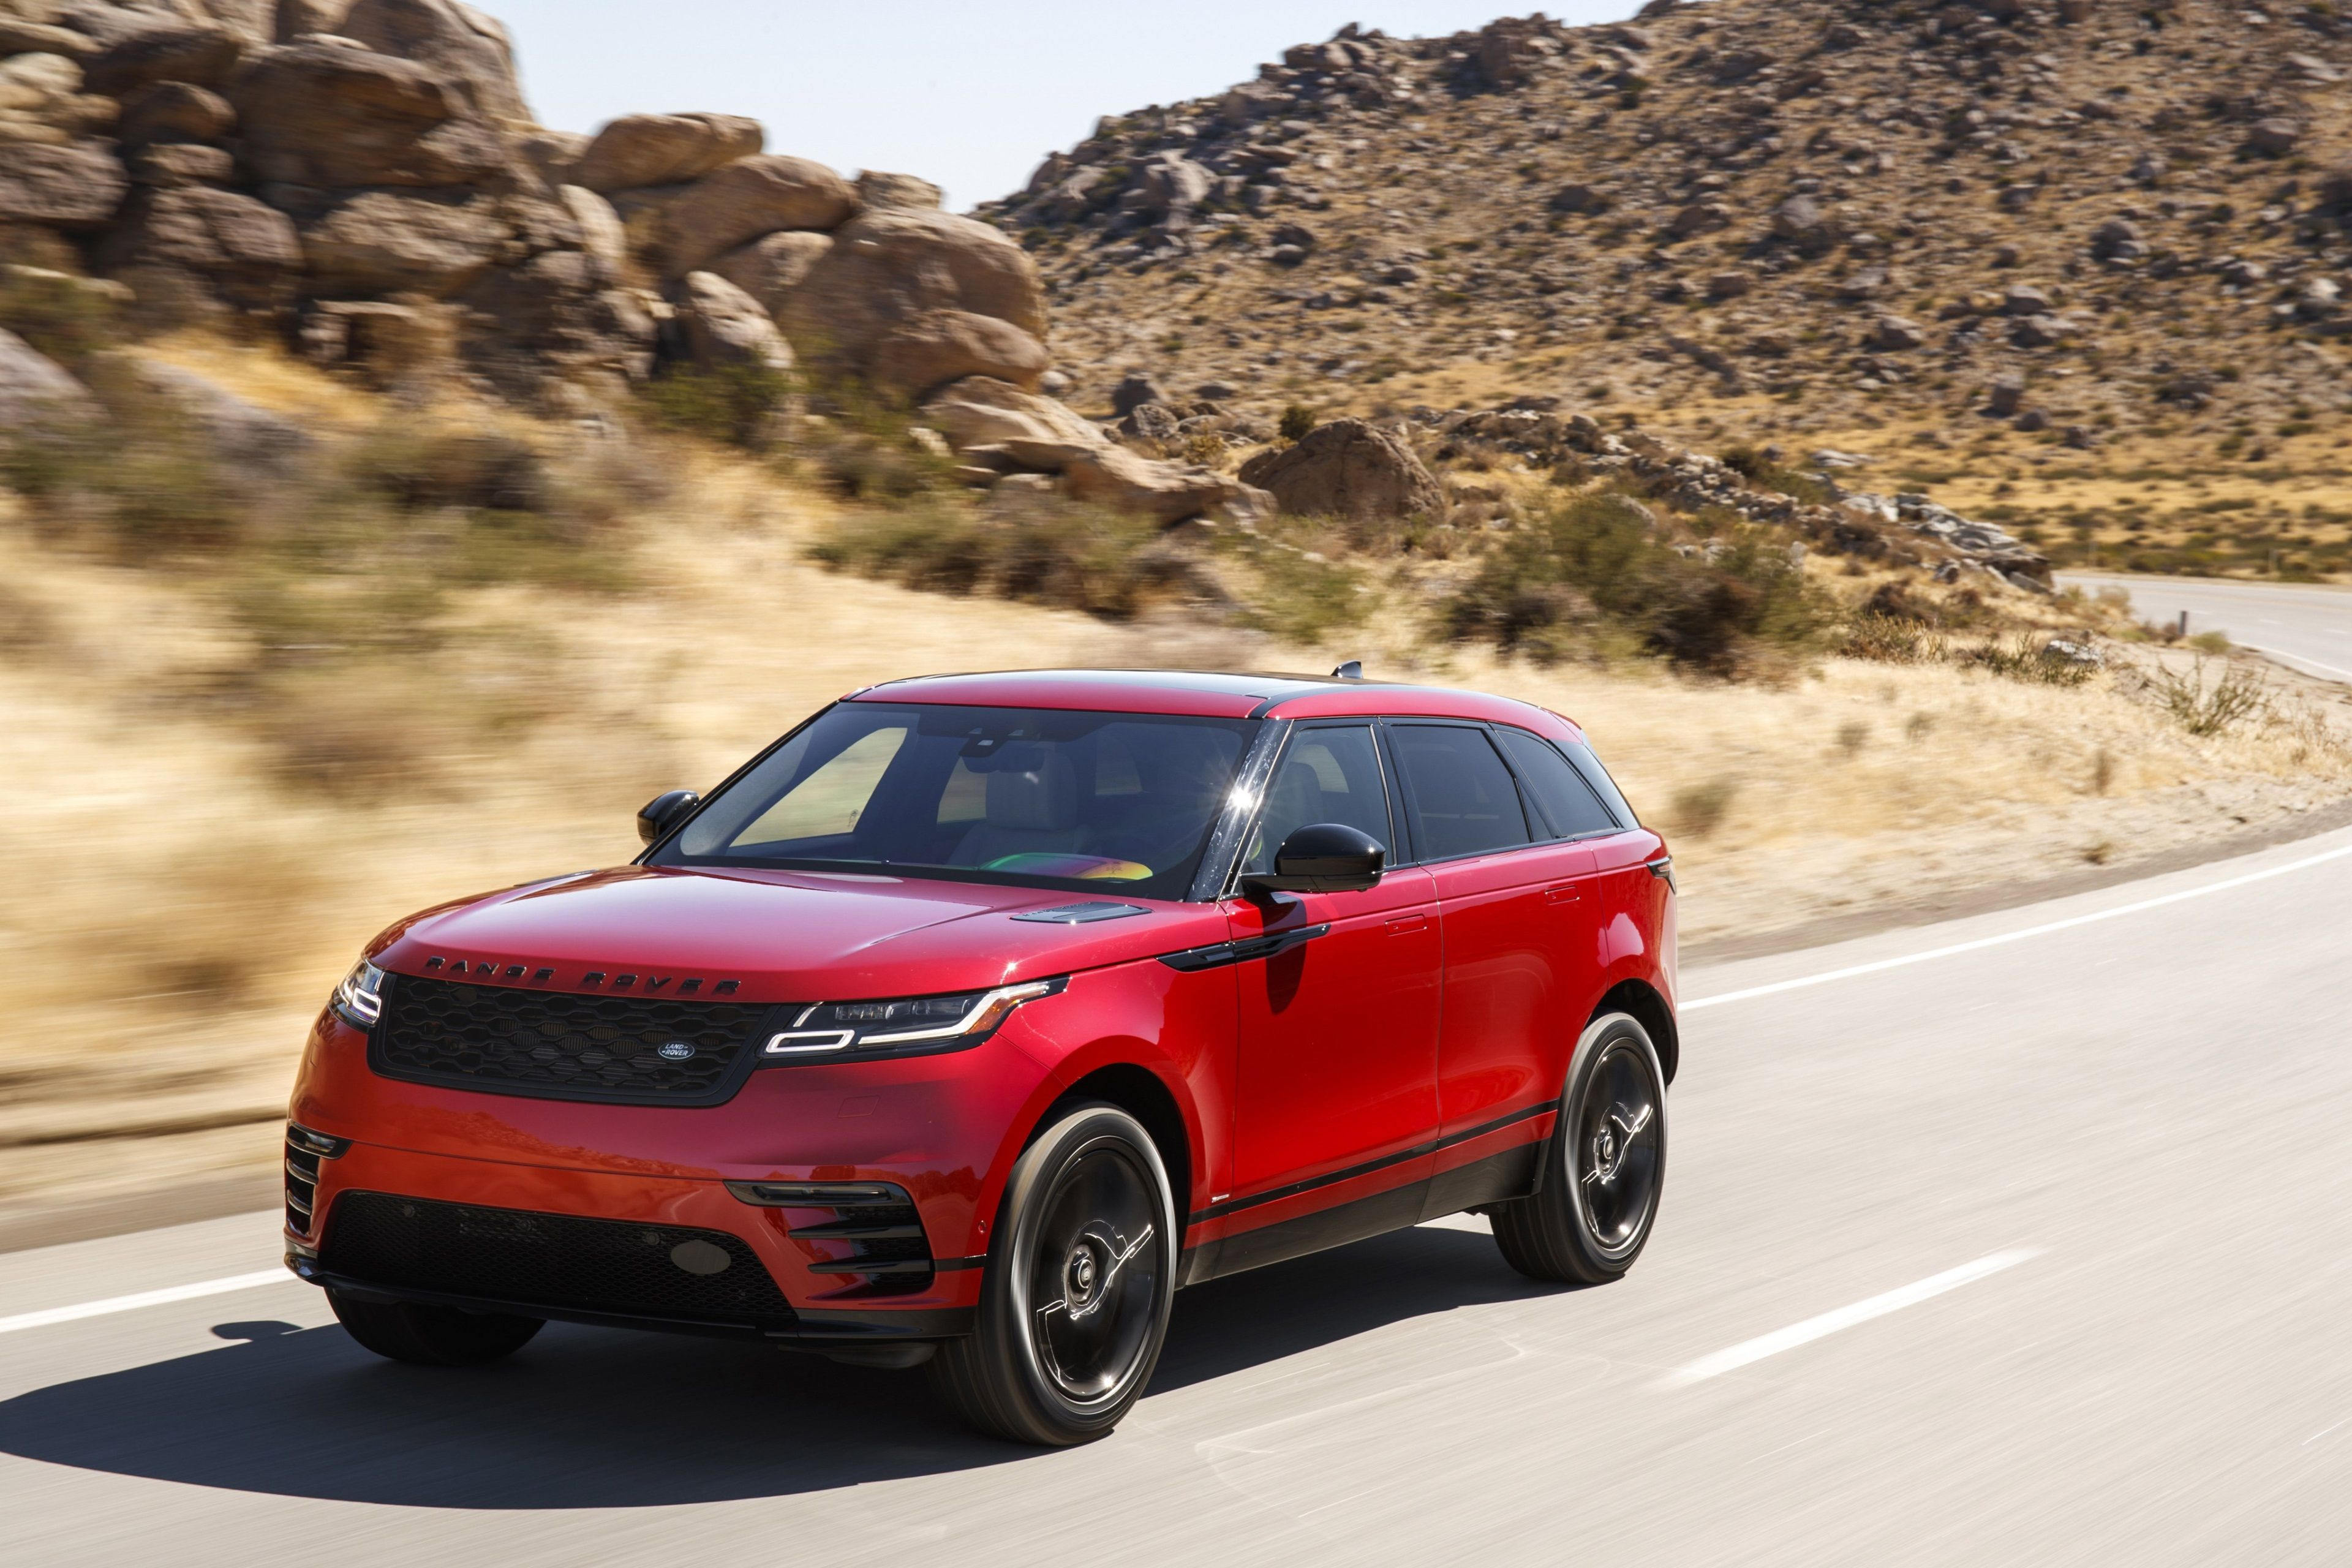 3840x2560 Range Rover Velar 4k Pc Wallpaper Download With Images